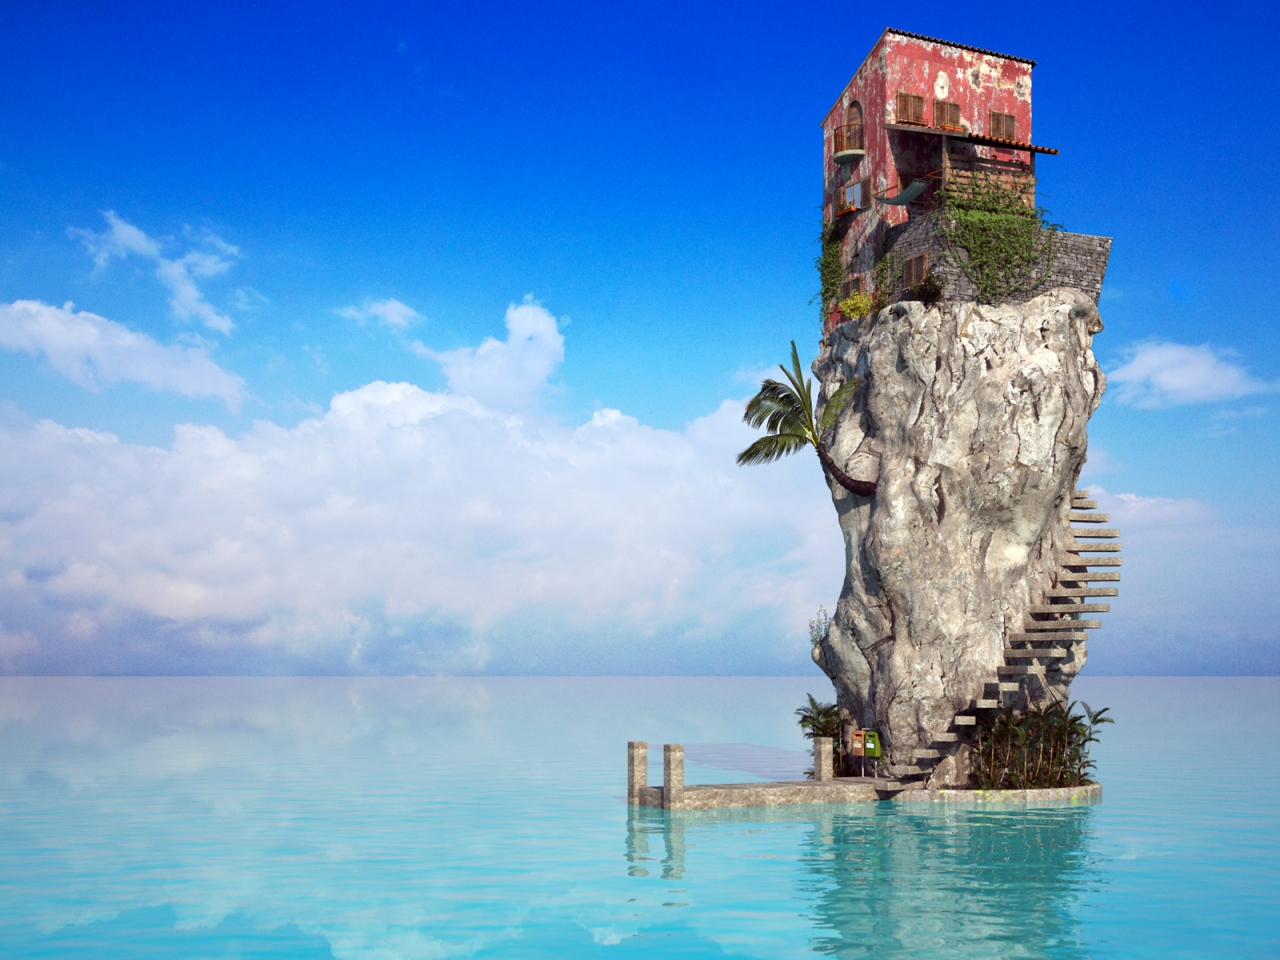 1280x960 Wallpaper rock, house, ladder, palm tree, sea, blue water